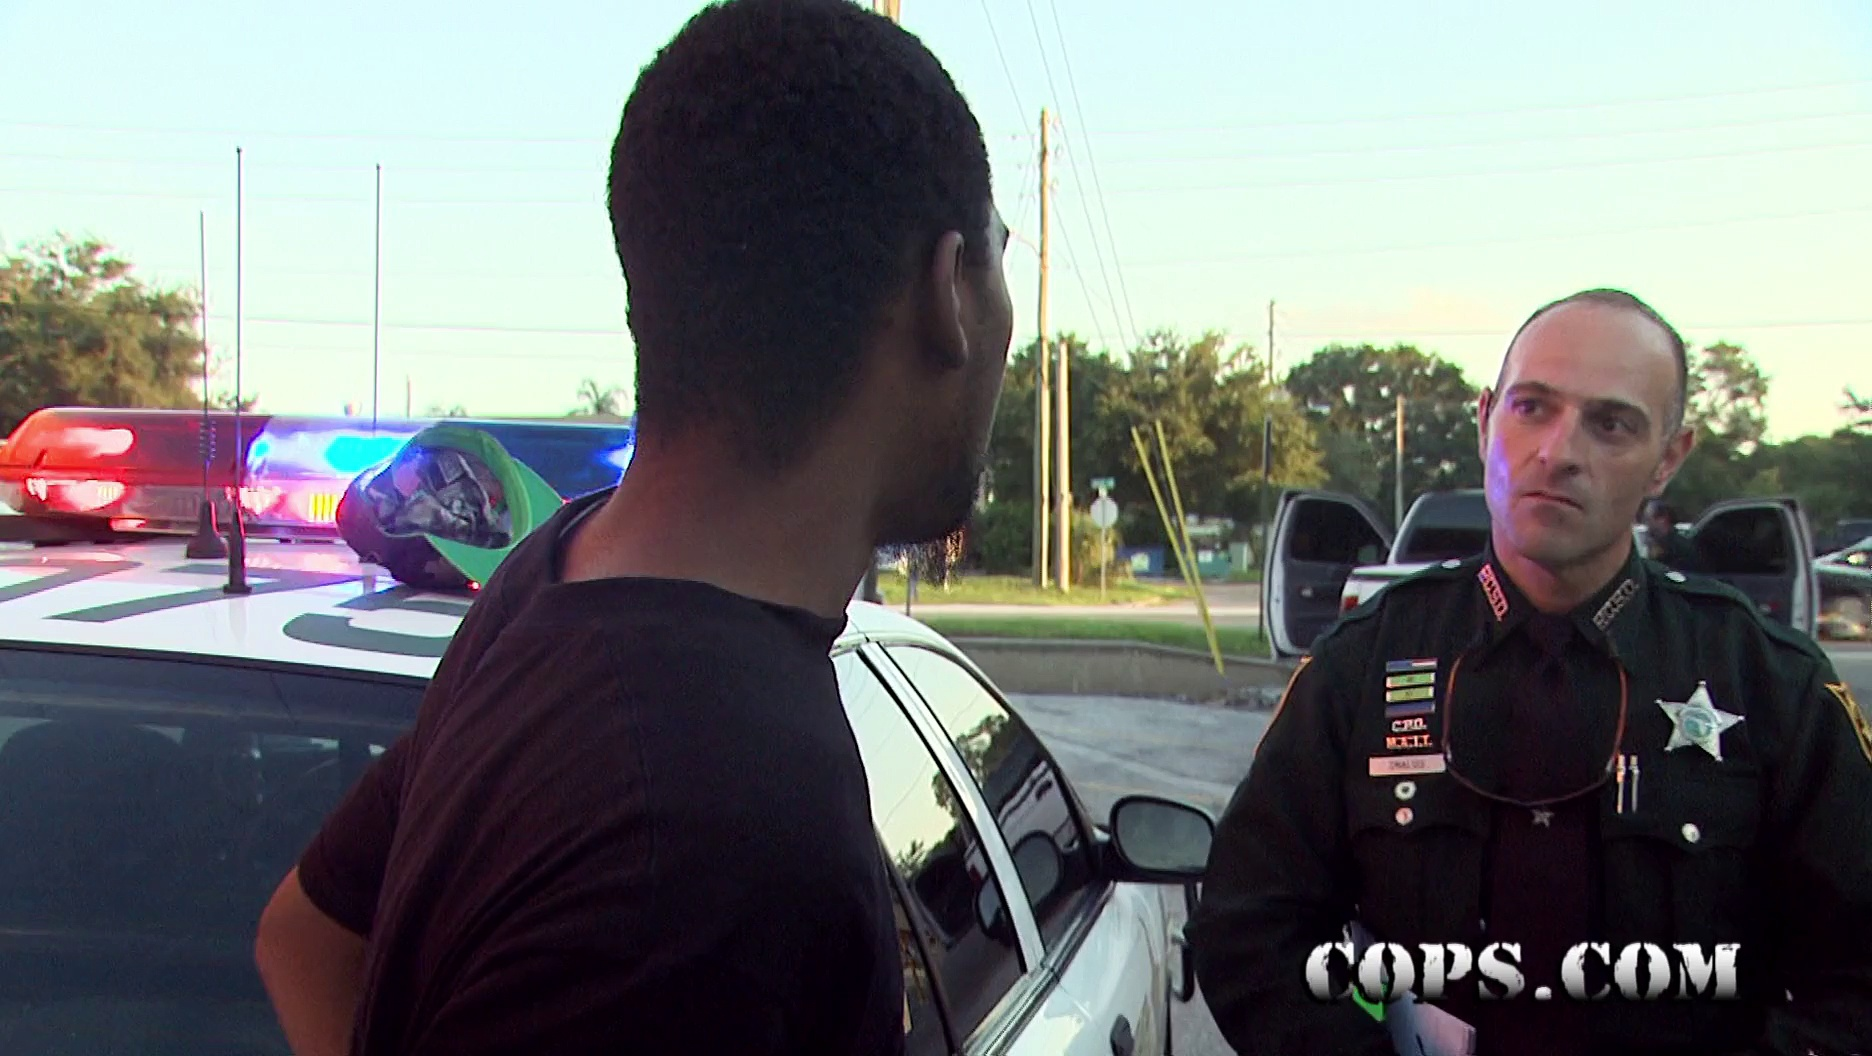 COPS Show 2723 Airs January 24th on SPIKE @ 8/7 central